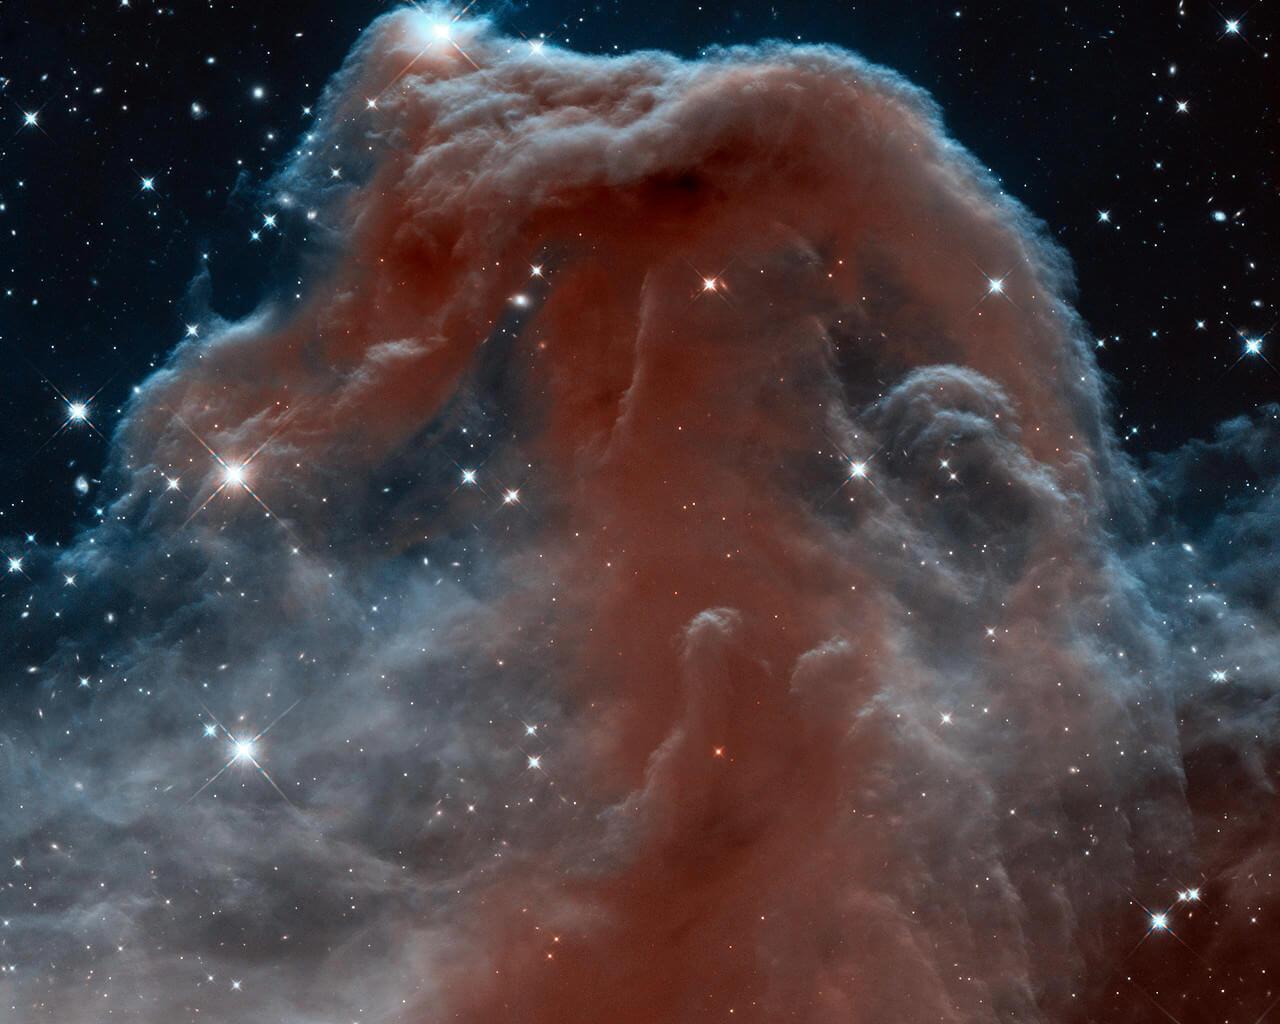 space is so cool - hubble pictures 19 (1)